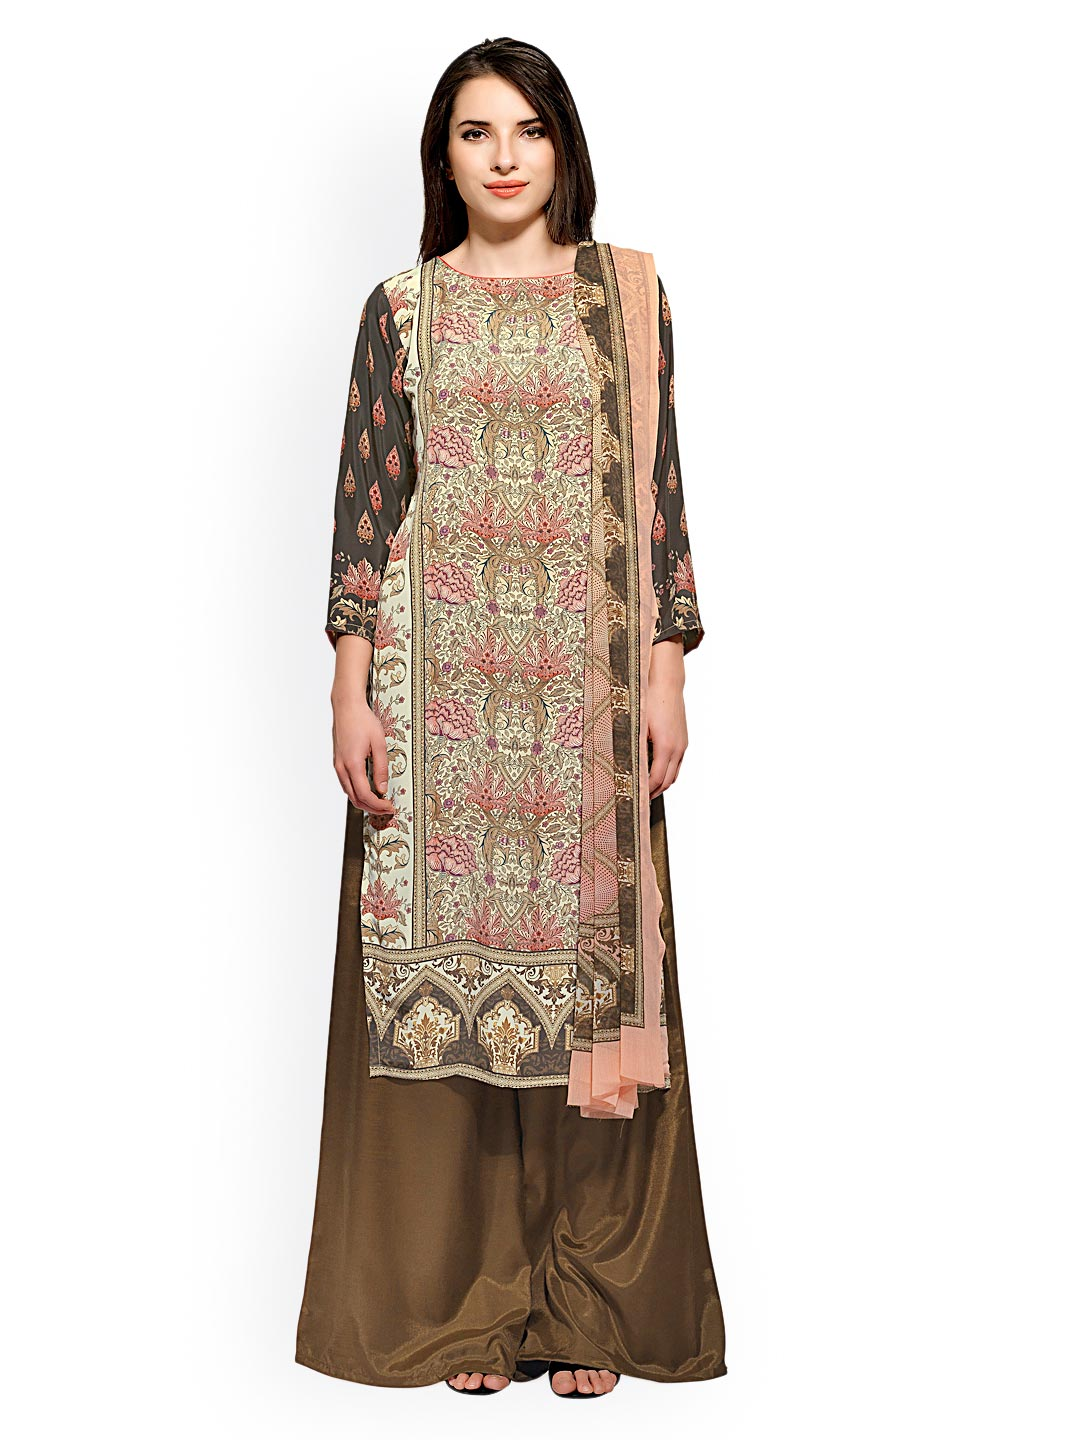 Bhelpuri Brown Printed Crepe Unstitched Dress Material image